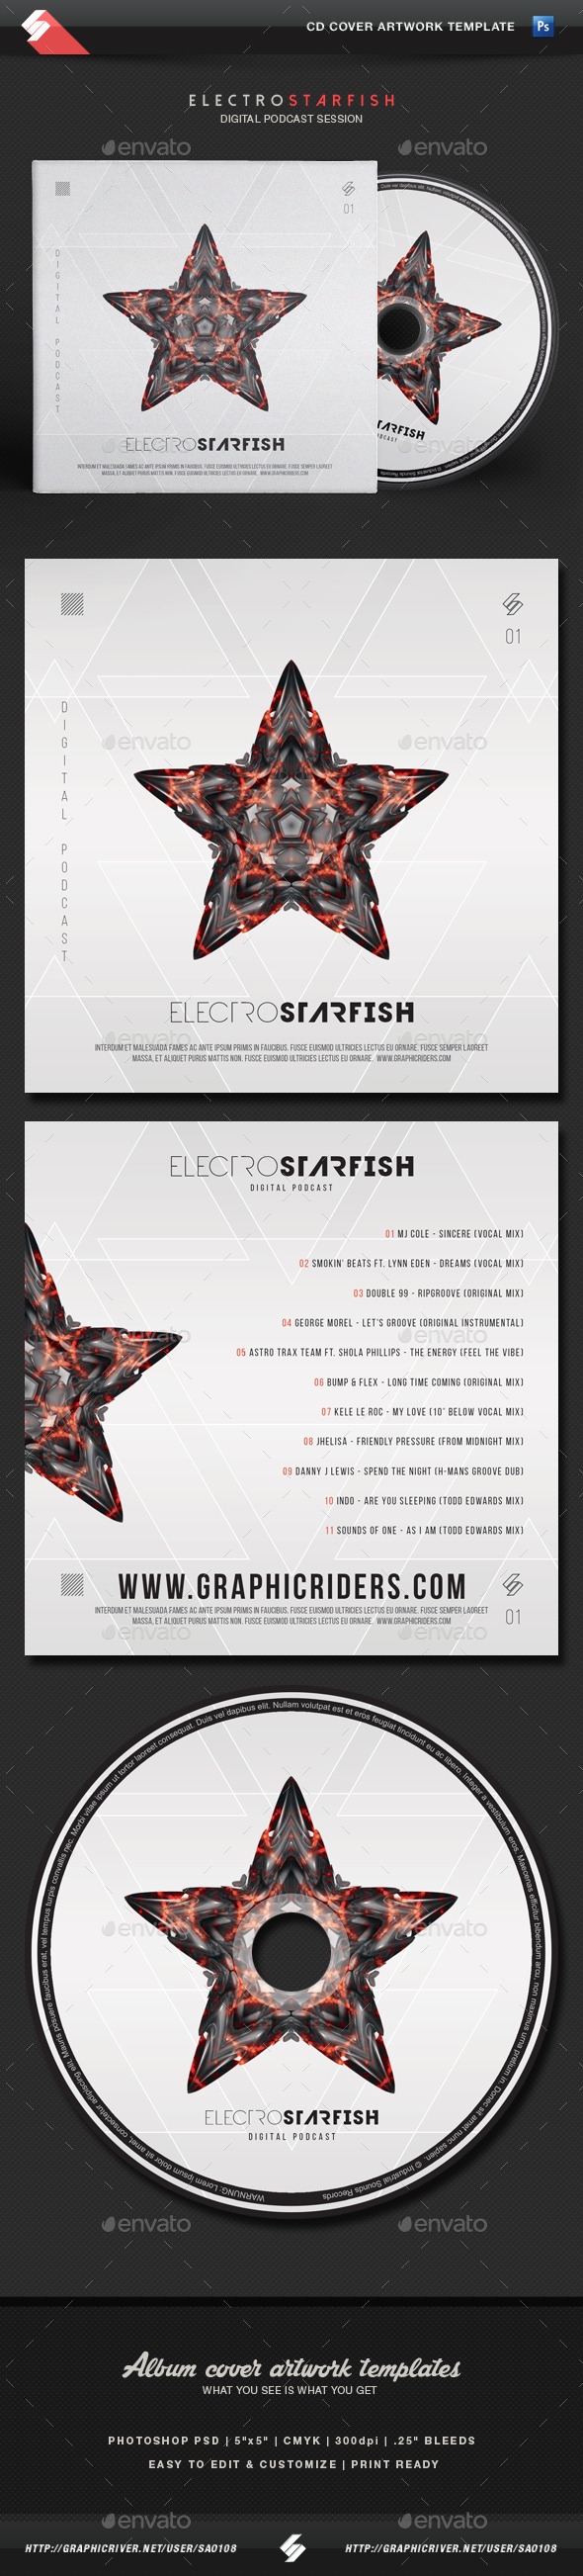 GraphicRiver Electro Starfish CD Cover Artwork Template 11646467